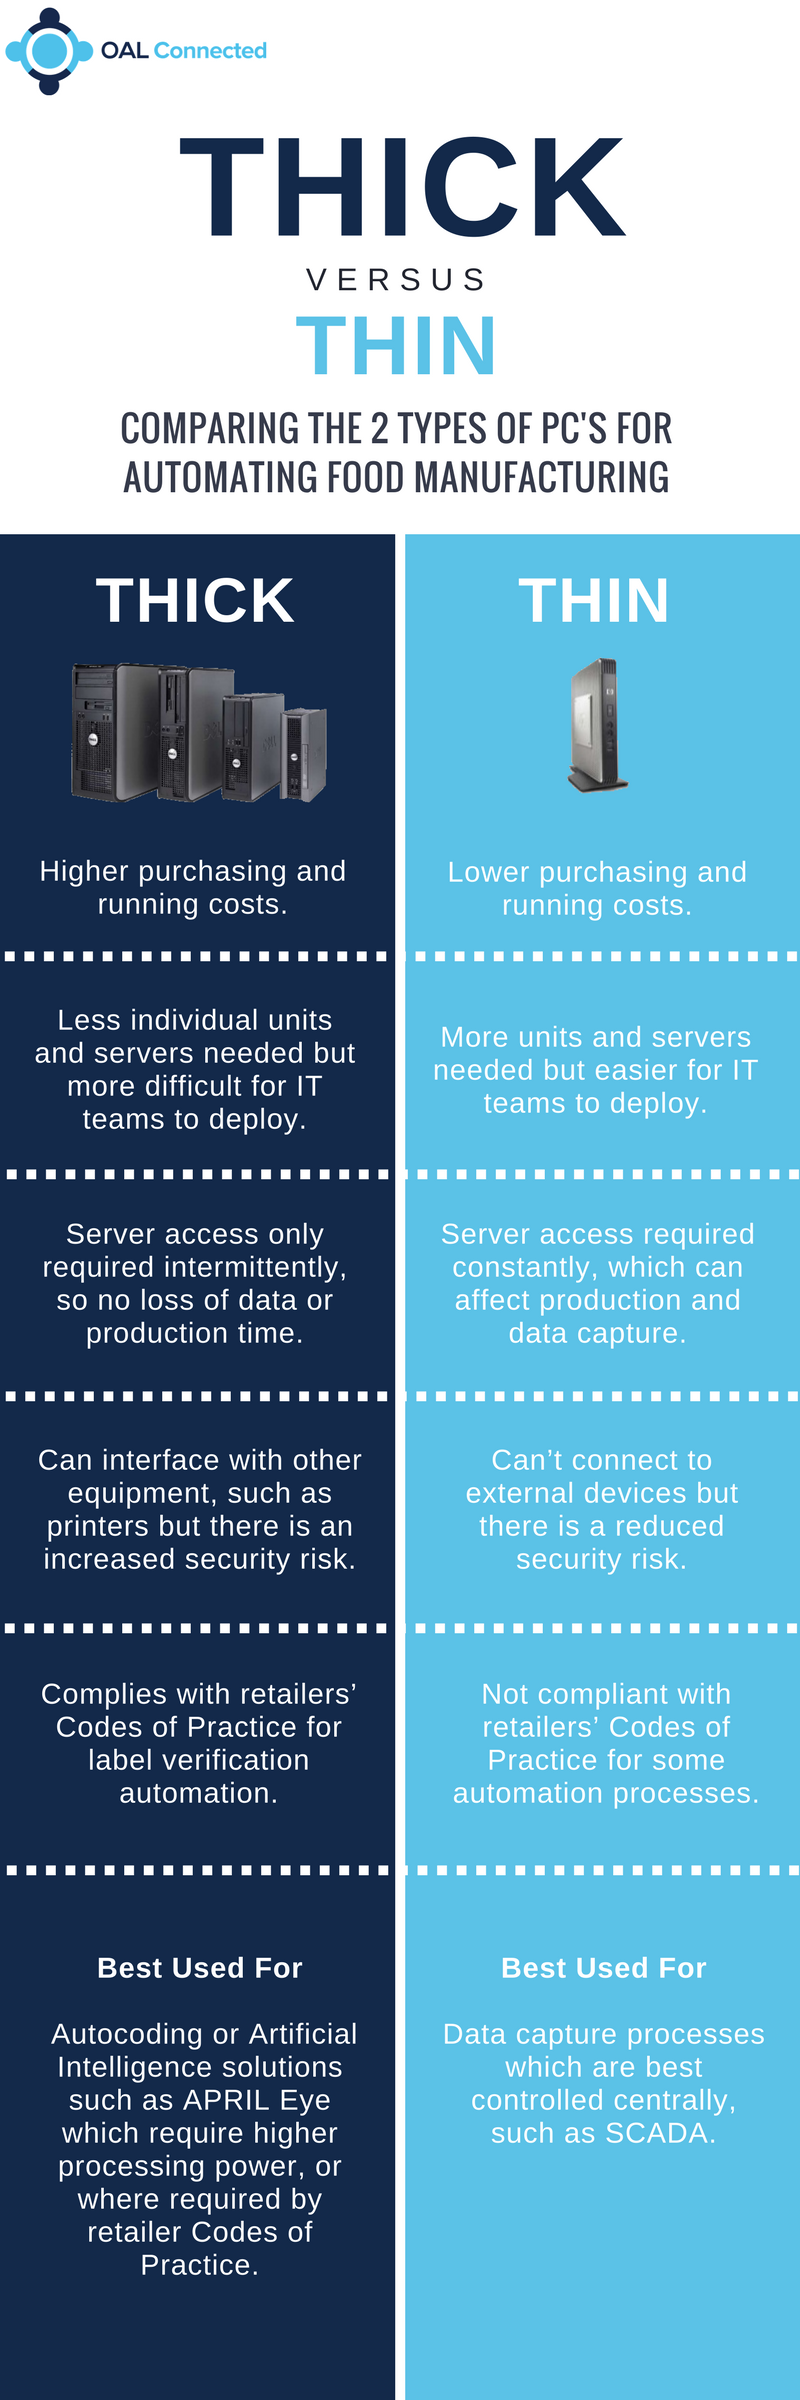 Thick Vs Thin Client Infographic - Click to Expand